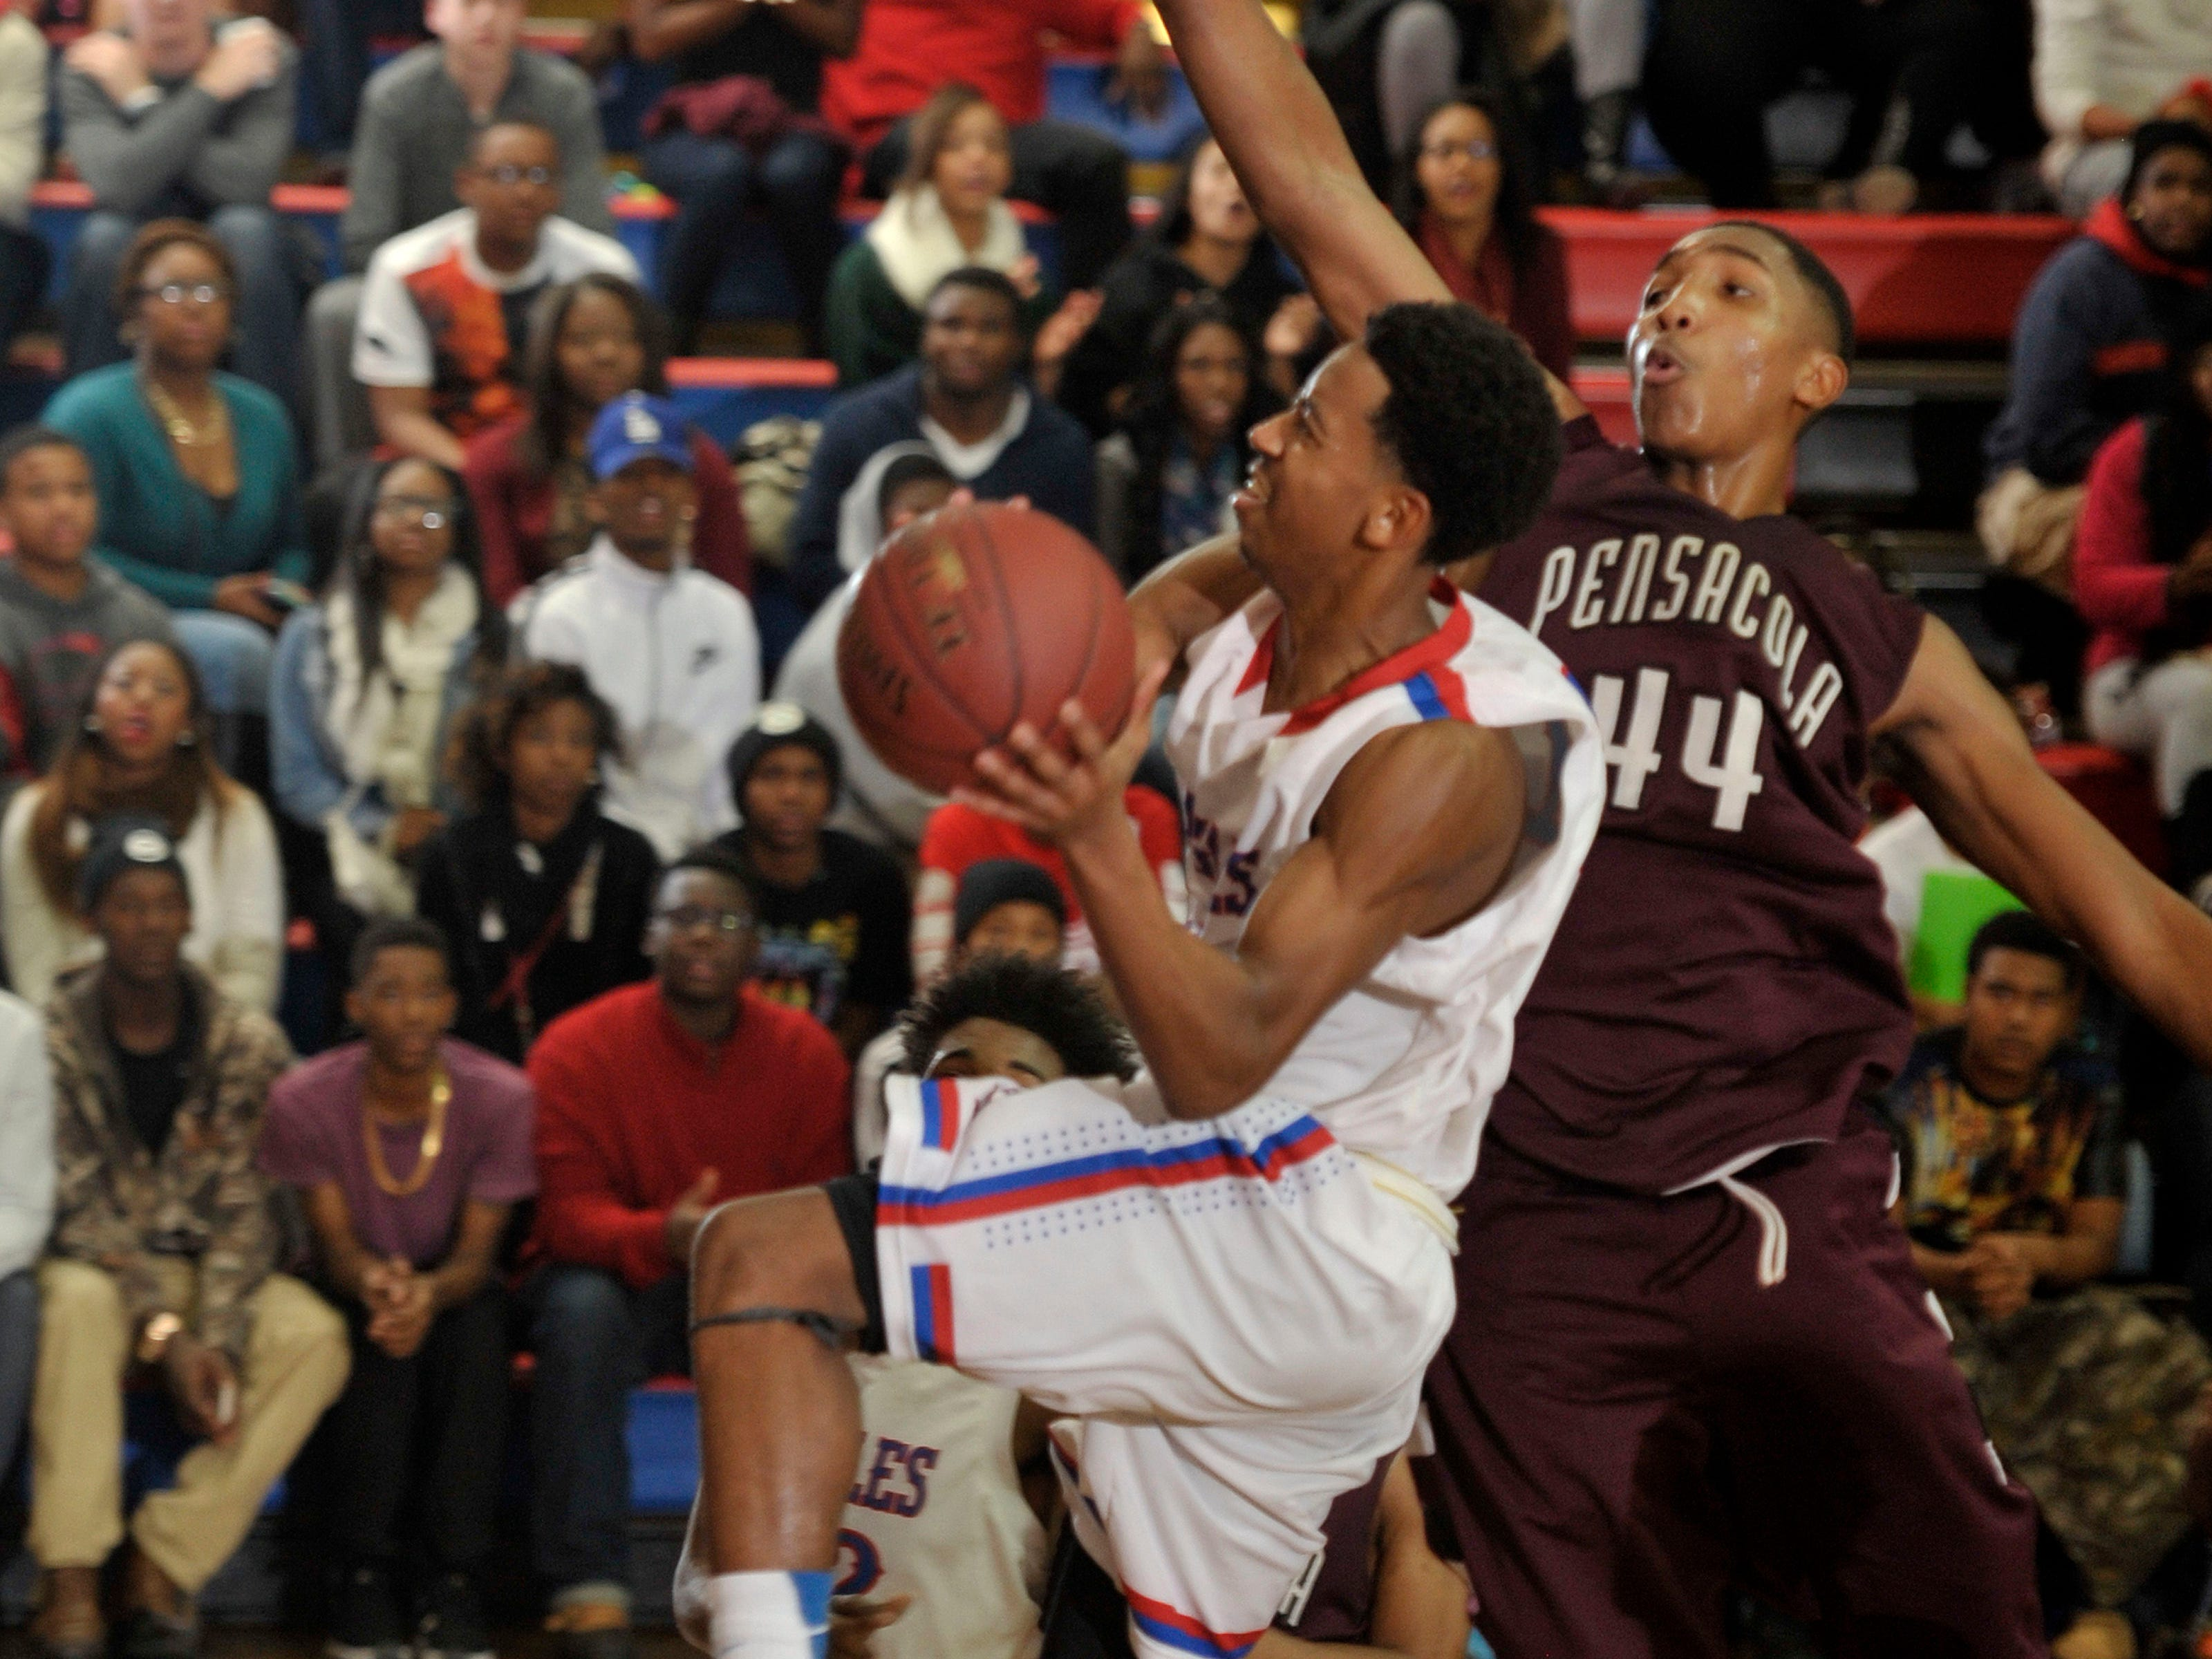 Devin Petters of the Pine Forest Eagles flies in attepting two points against defending Pensacola High Tigers No. 44, Devonchae Bryant, drawing a foul on Bryant in second-half action during their game Friday night at Pine Forest High.